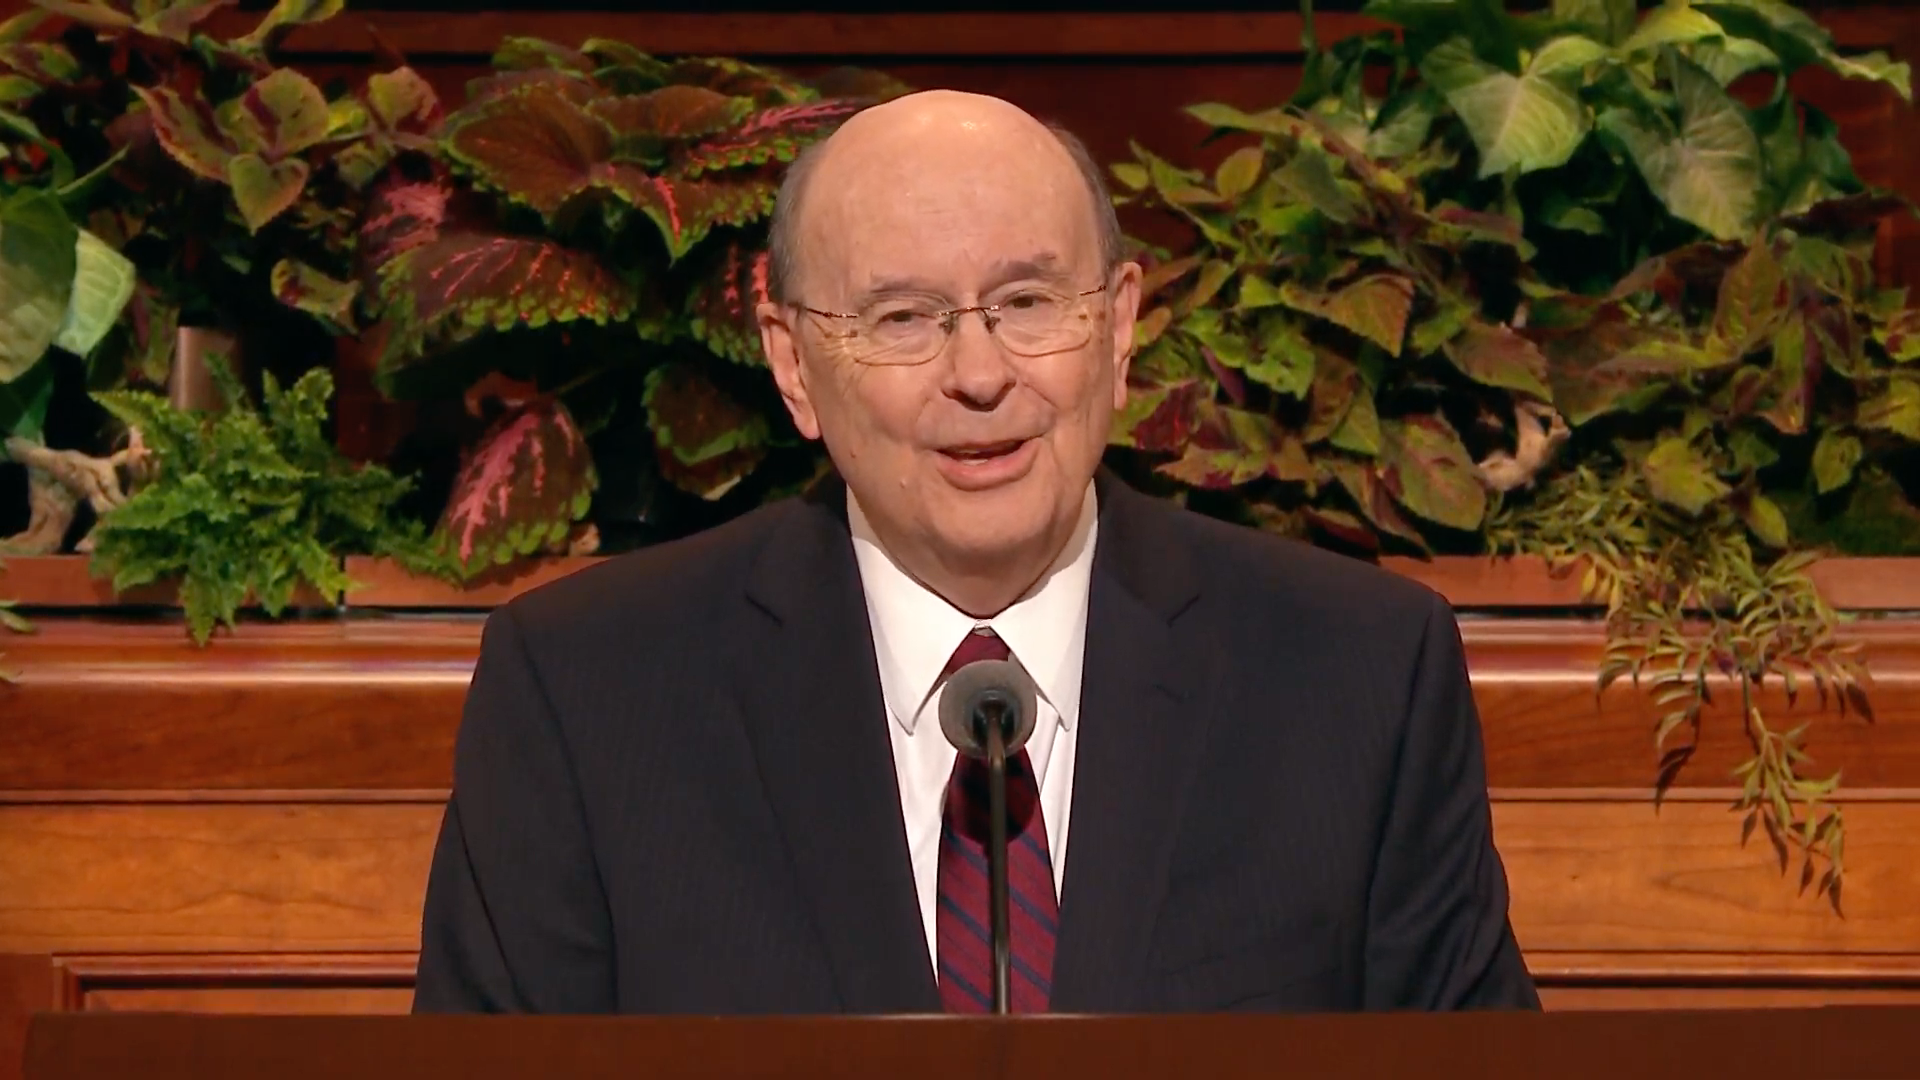 Elder Quentin L. Cook of the Quorum of the Twelve Apostles speaks during the Saturday afternoon session in the 189th Semiannual General Conference of the Church on Oct. 5, 2019.